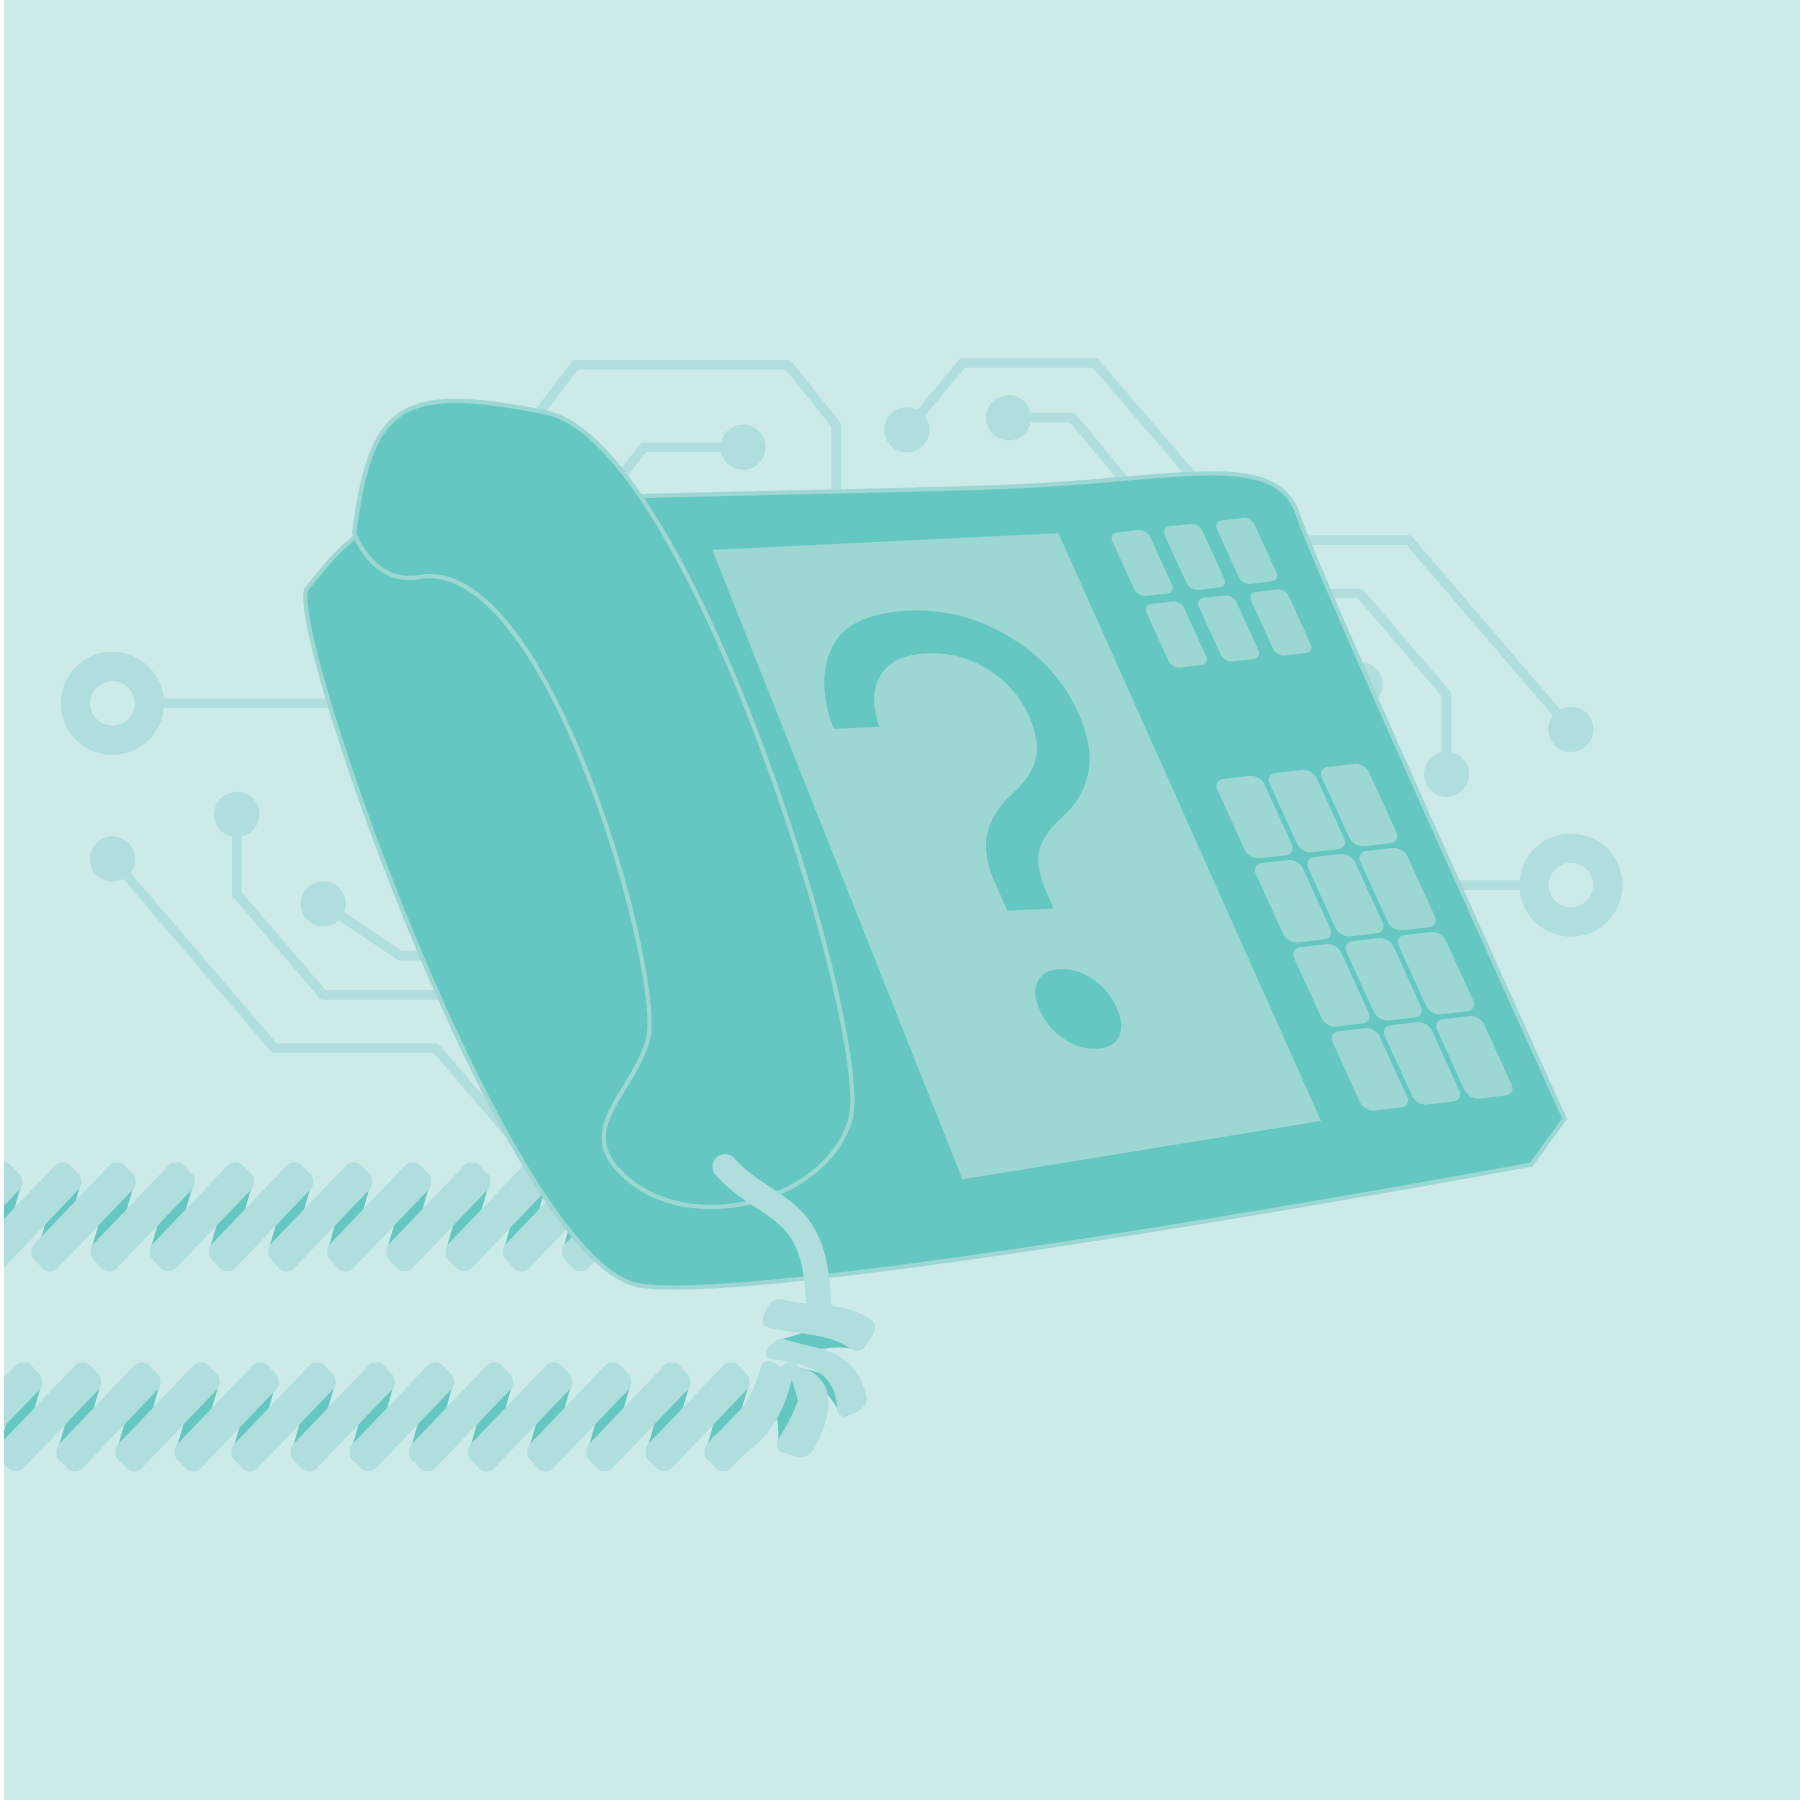 What Your Small Business Should Look for in a Business Phone System